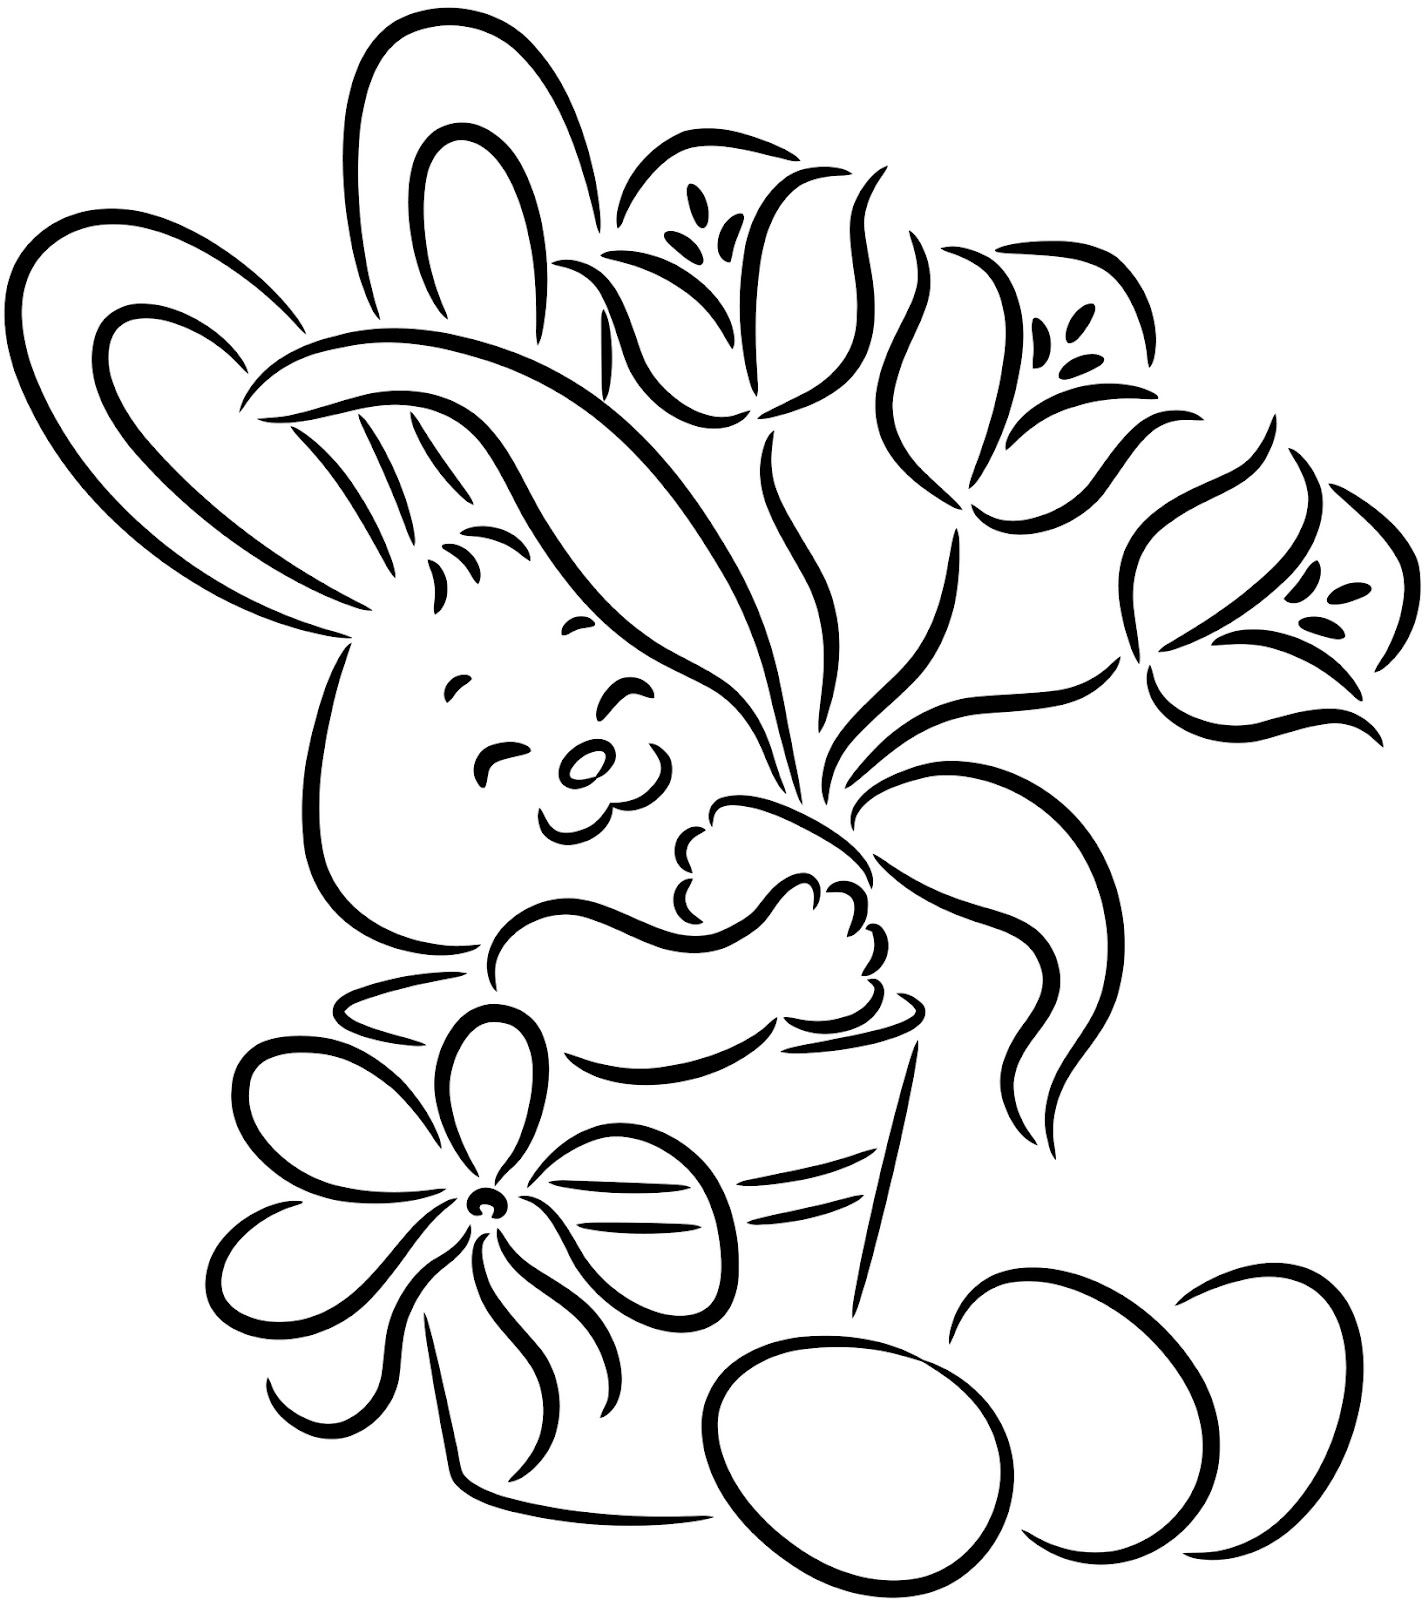 16 Easter Bunny Coloring Pages Gt Gt Disney Coloring Pages